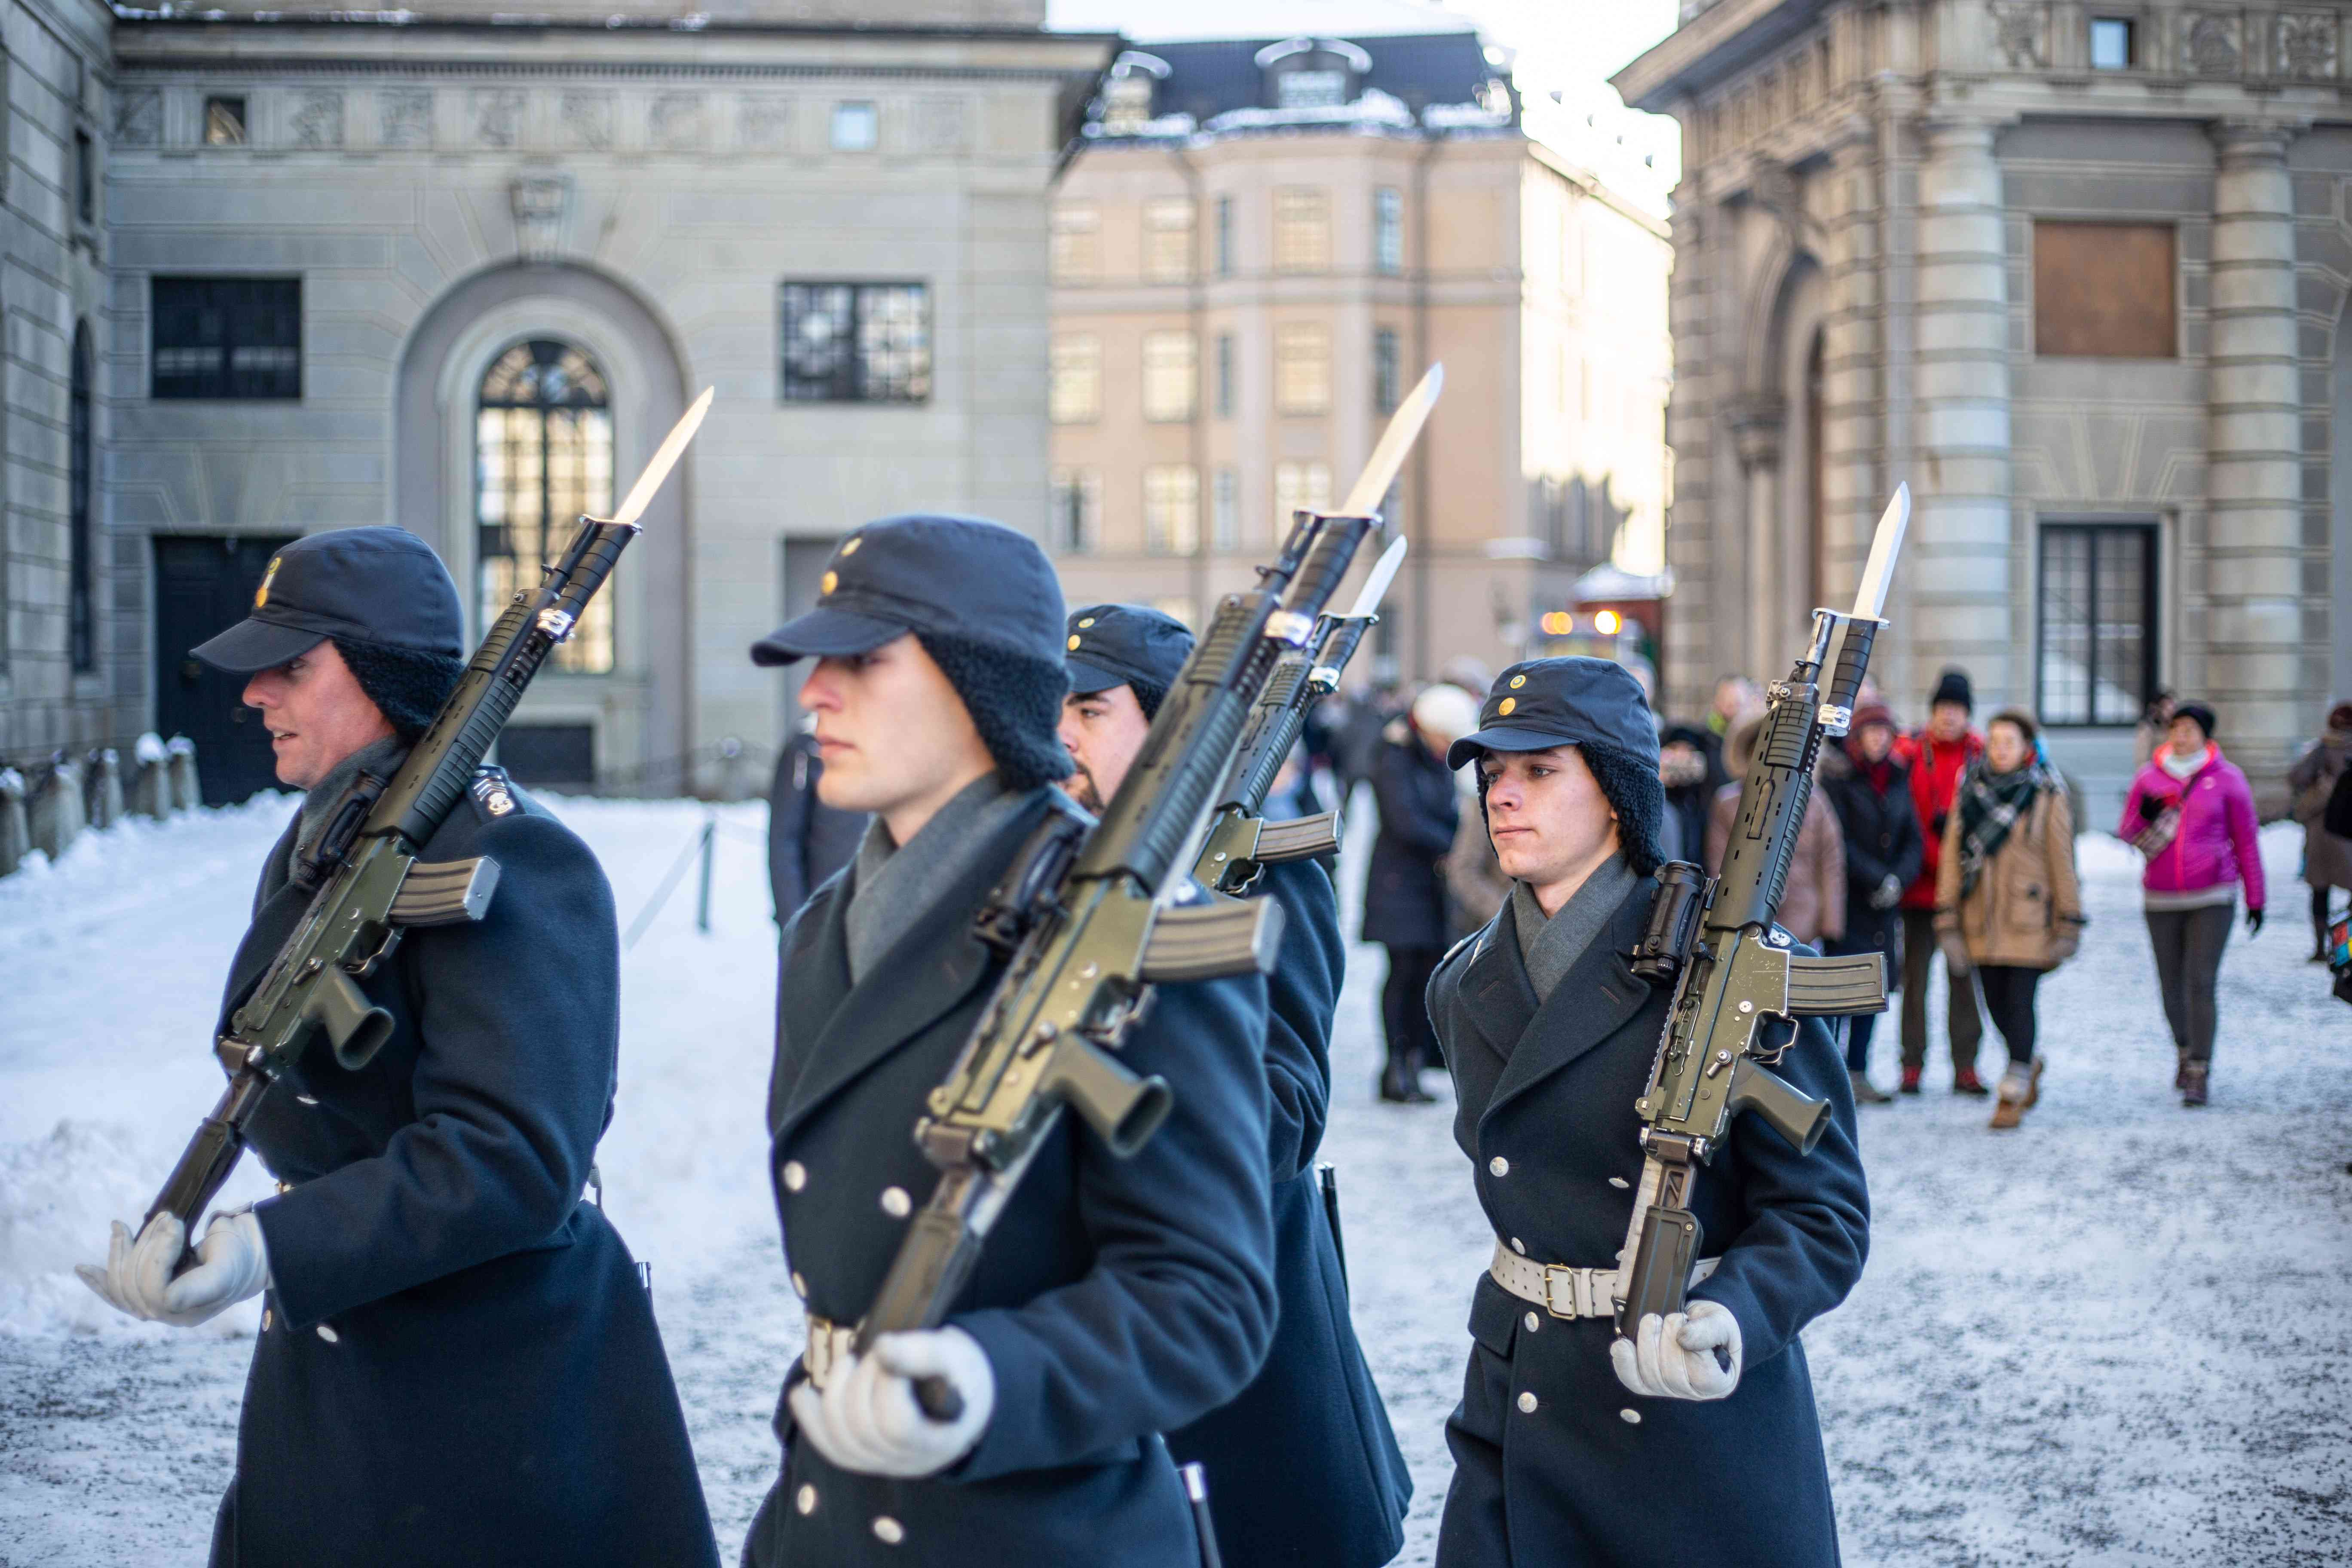 Guards marching with rifles during changing of the guards in Stockholm